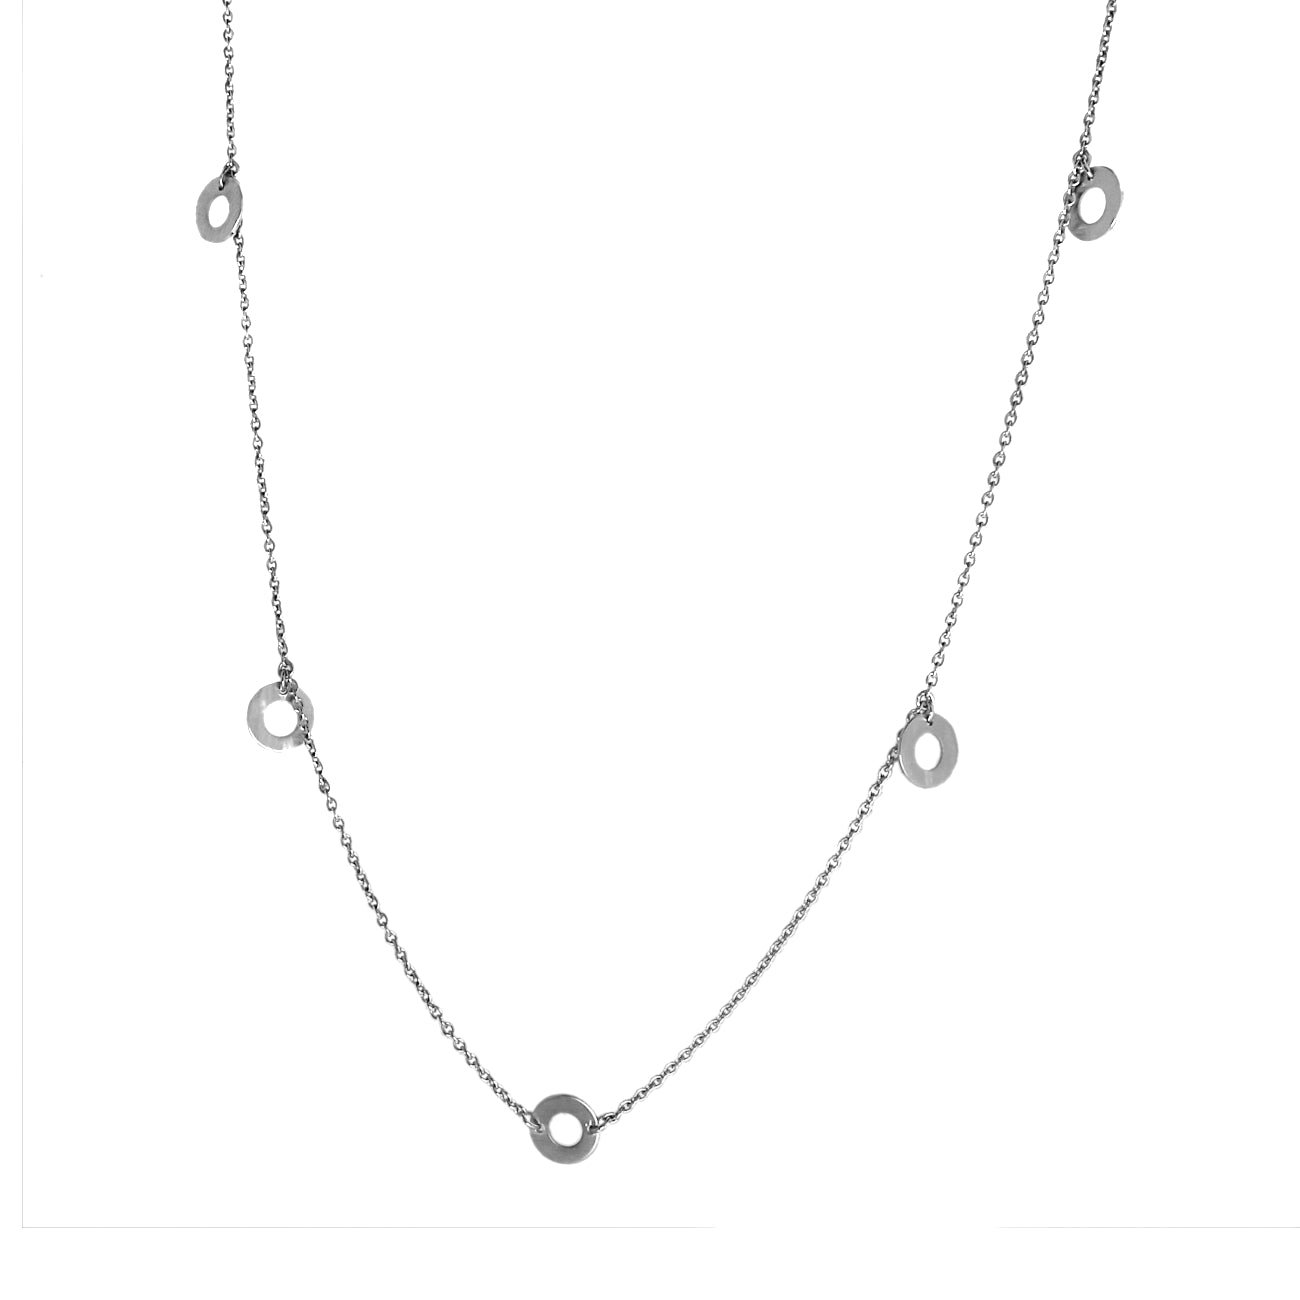 Feminity Necklace